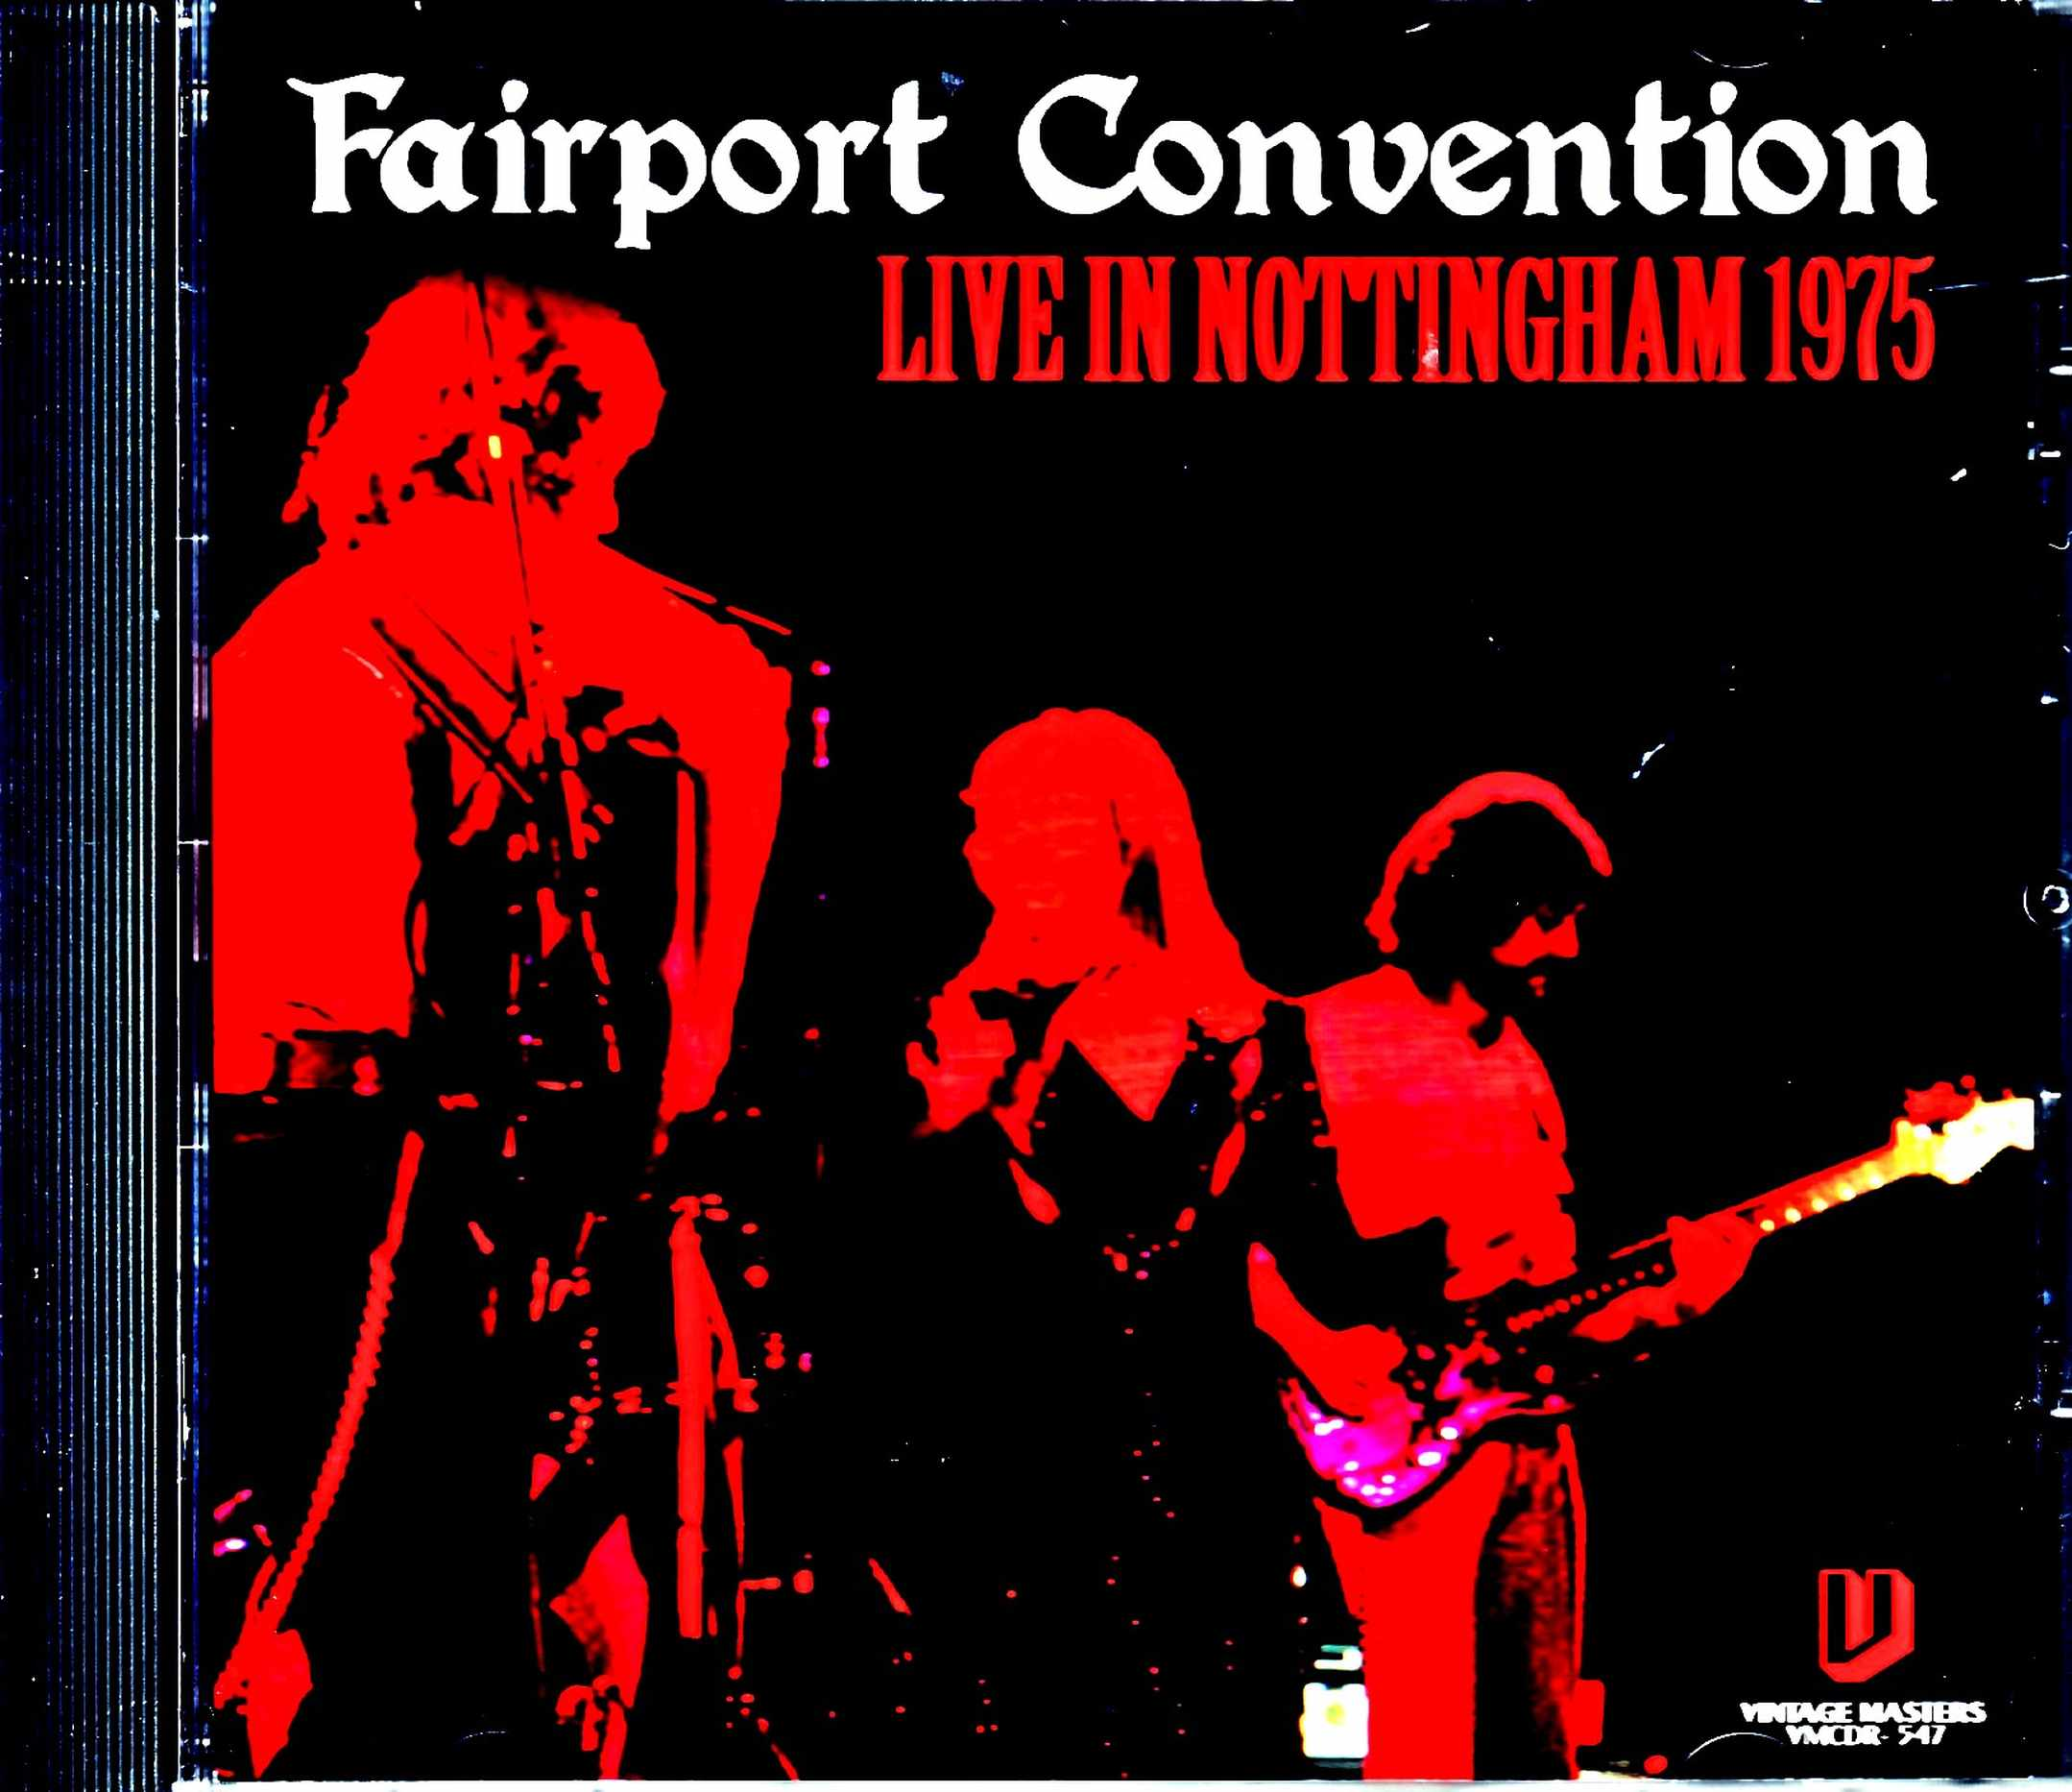 Fairport Convention フェアポート・コンヴェンション/UK 1975